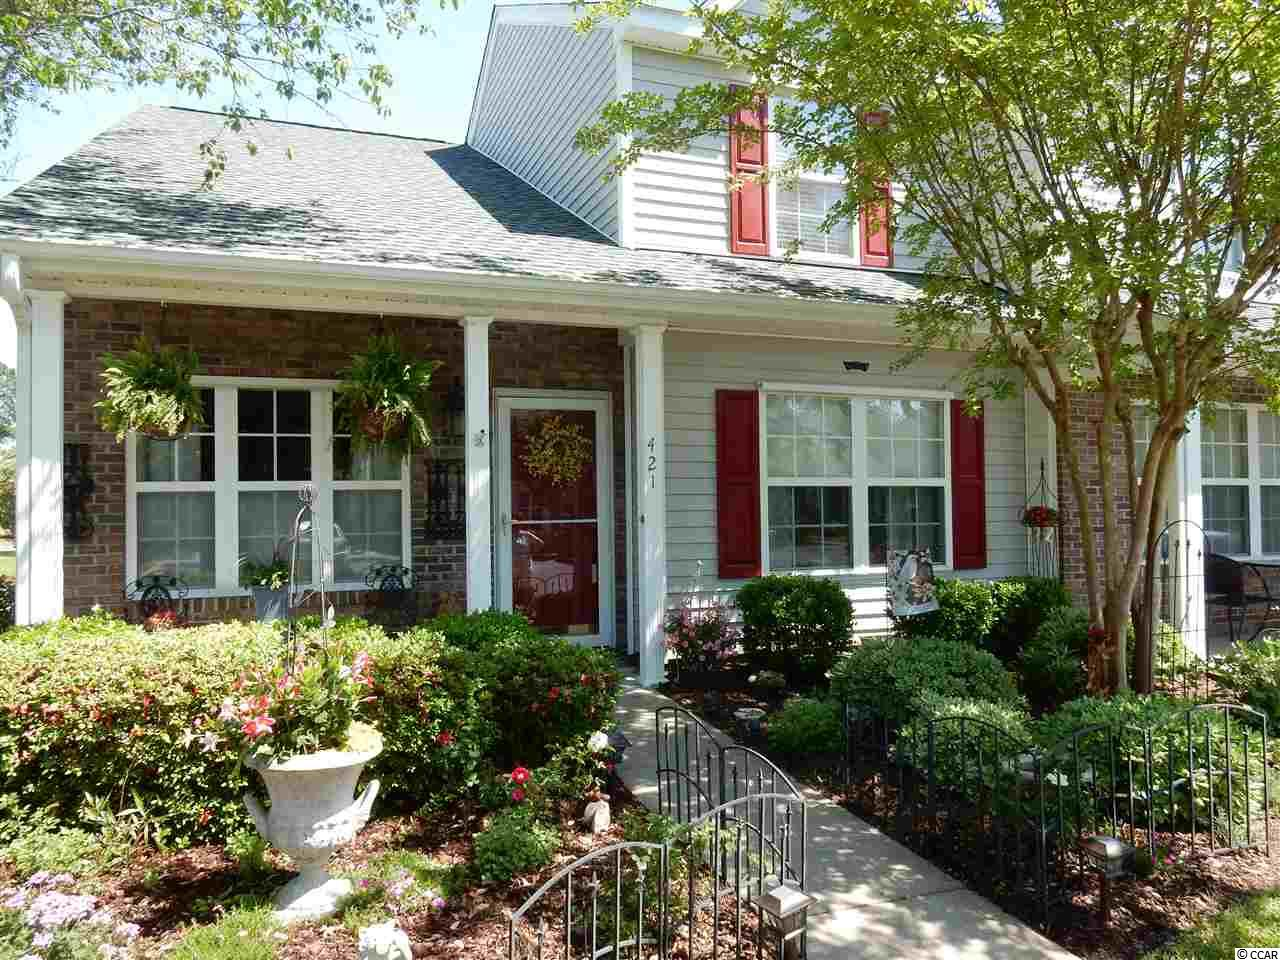 Don't miss this well cared for home in Murrells Inlet.   3 bedrooms, 2 1/2 bath. Master on first floor.   Kitchen and Carolina room overlook peaceful pond. Perfect location close to shopping, beach , Marshwalk, Huntington Beach. Brookgreen Gardens. Seller cannot move until Oct 1